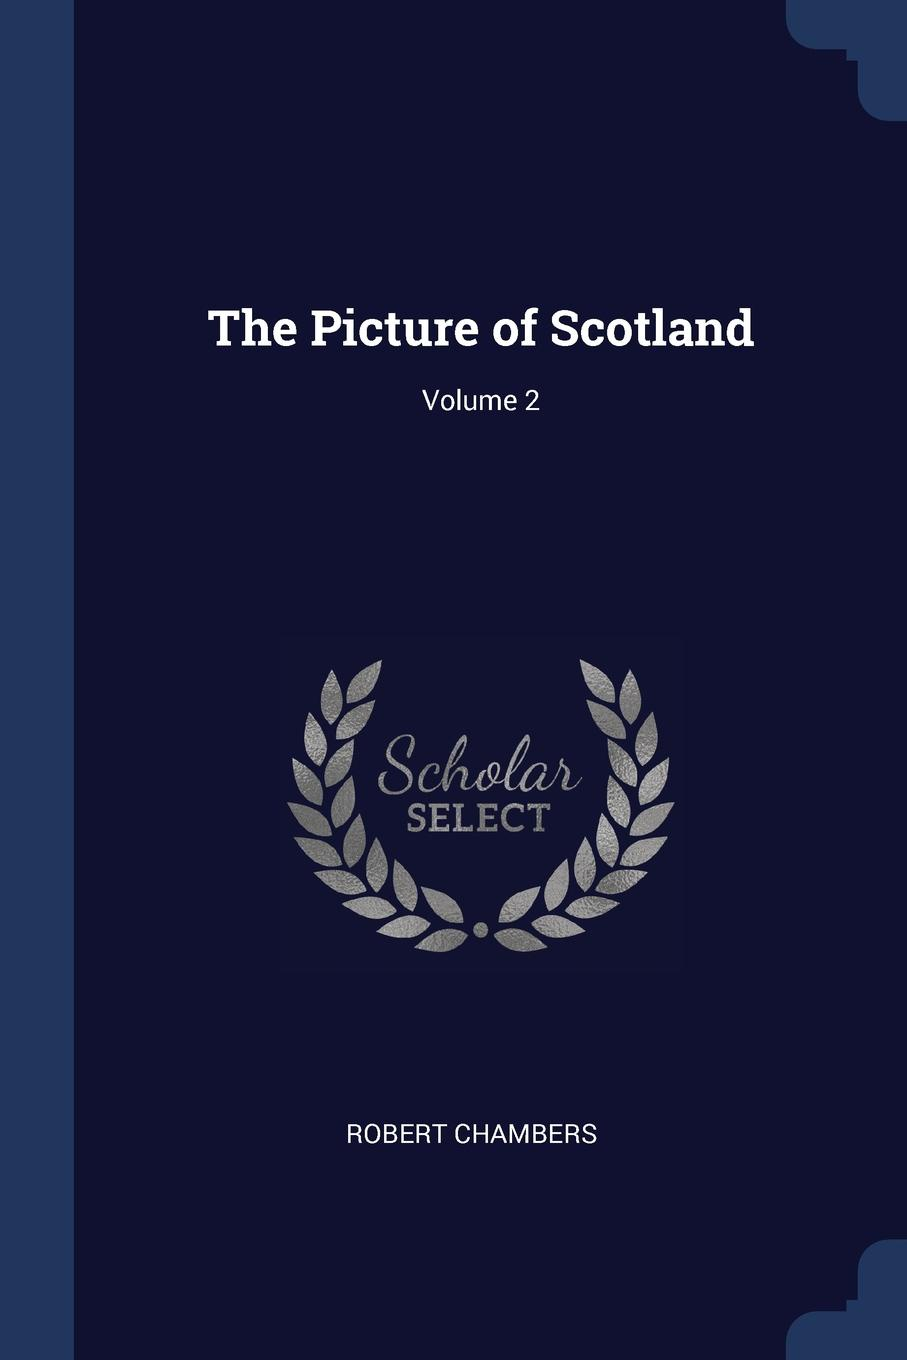 The Picture of Scotland; Volume 2. Robert Chambers